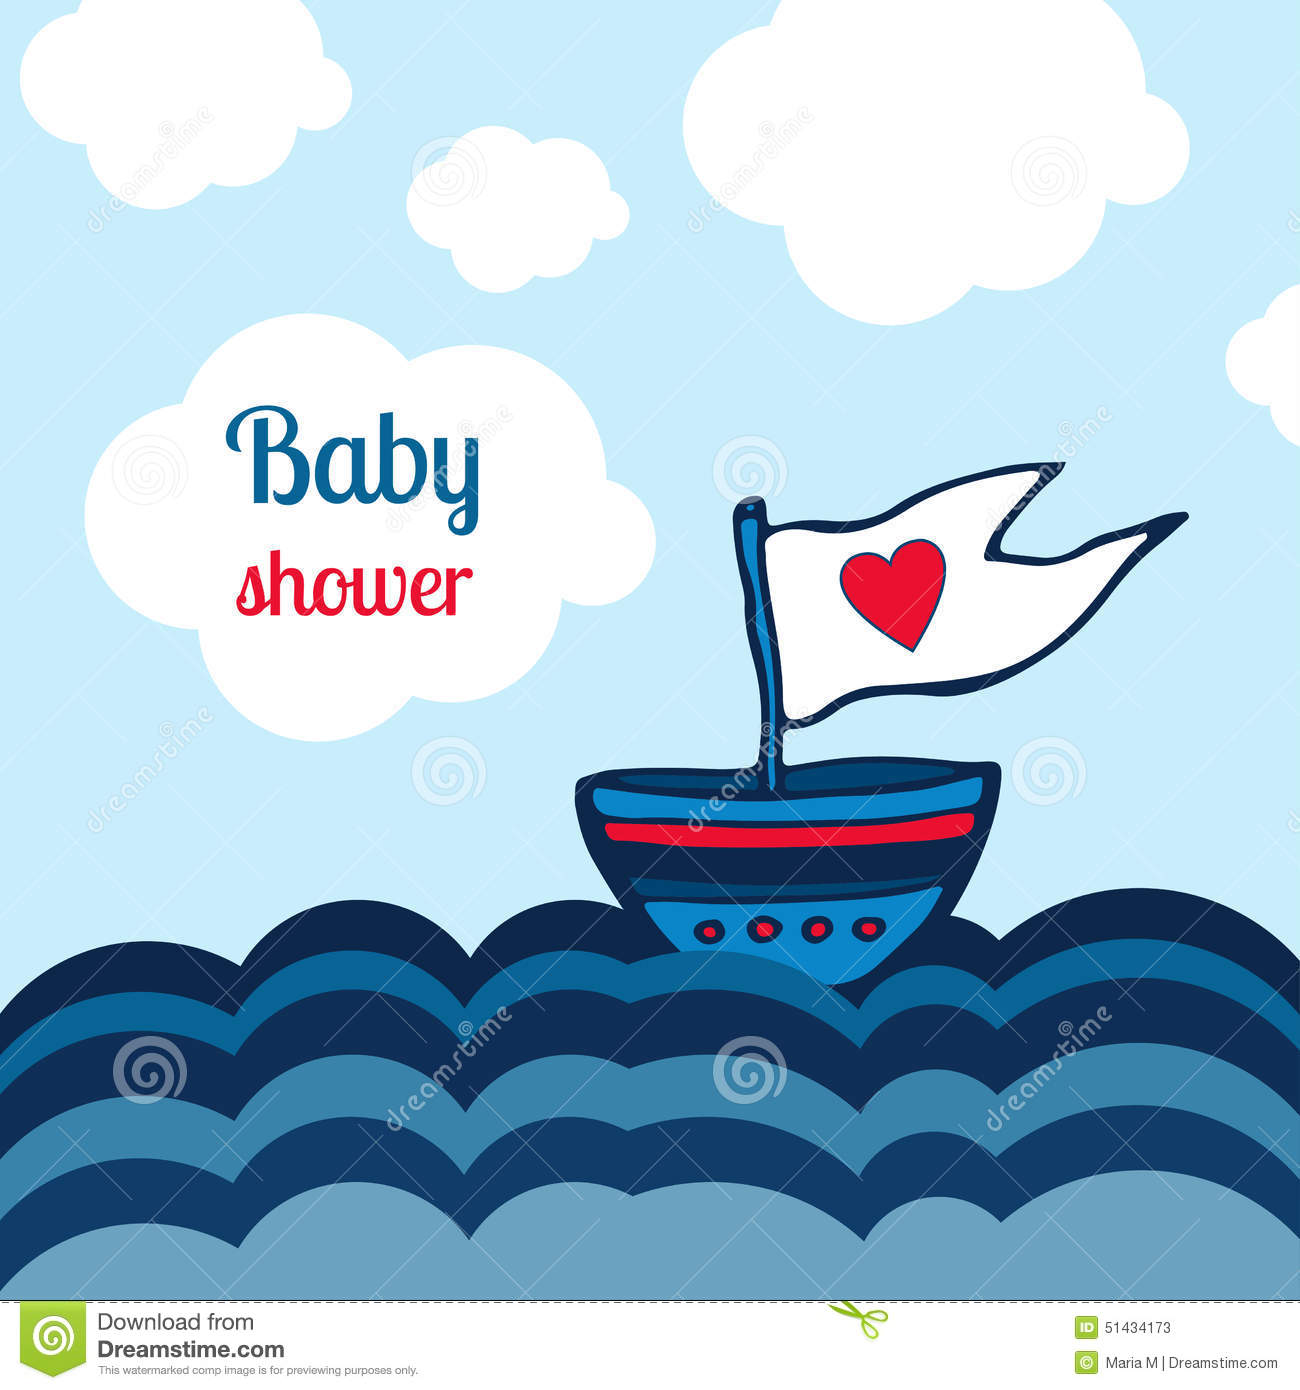 Baby Shower Card With Ship, Sea And Clouds Design. Vector Kids.